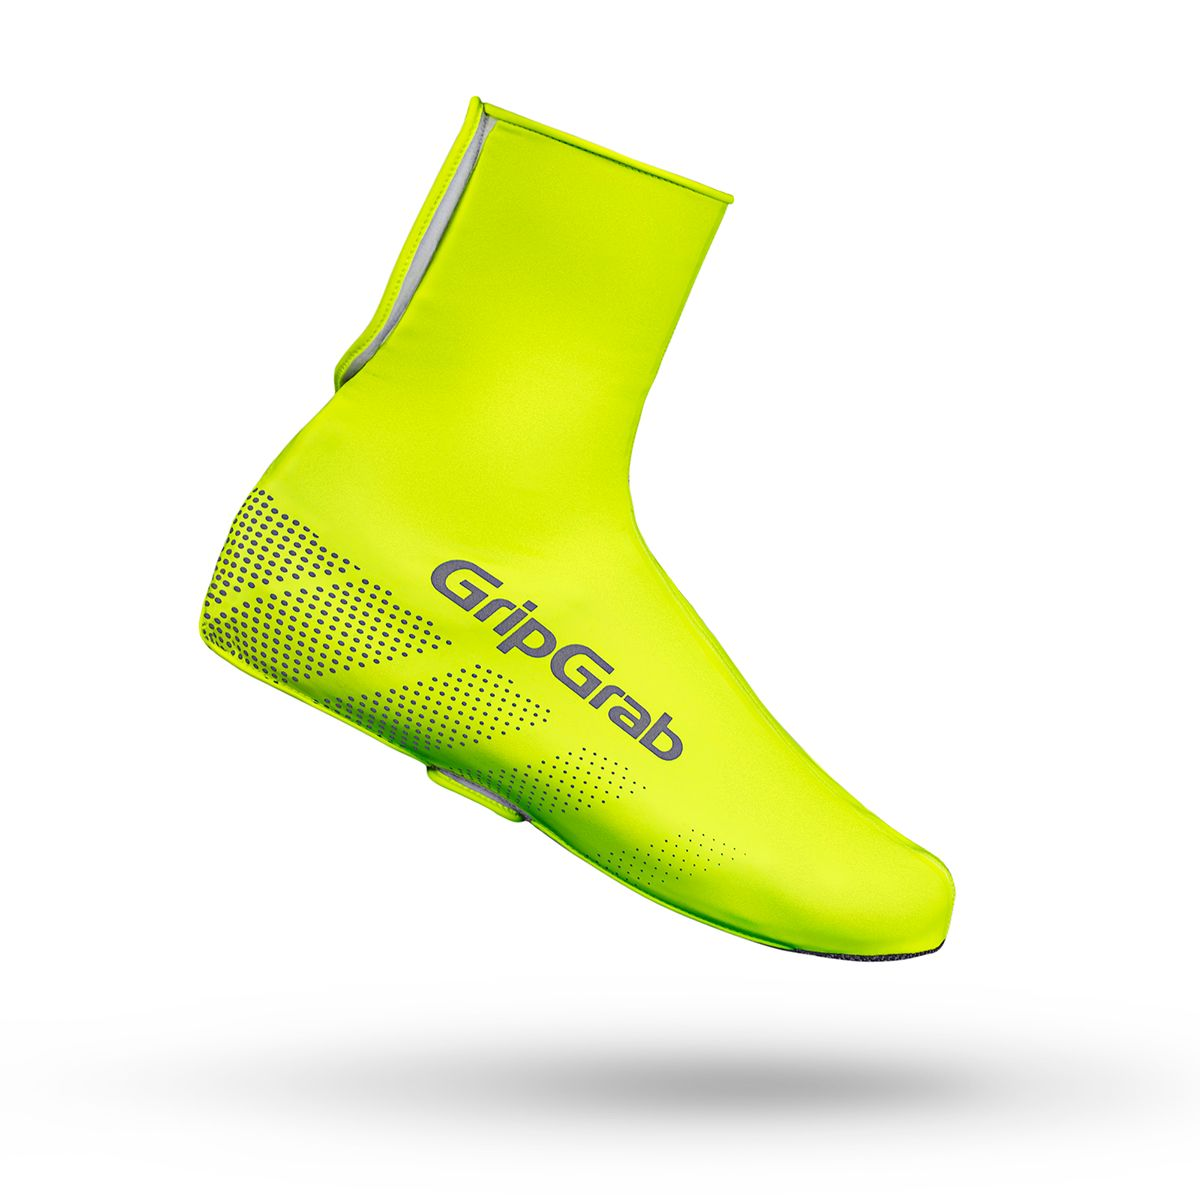 RIDE WATERPROOF HI-VIS SHOE COVER 01 Überschuhe